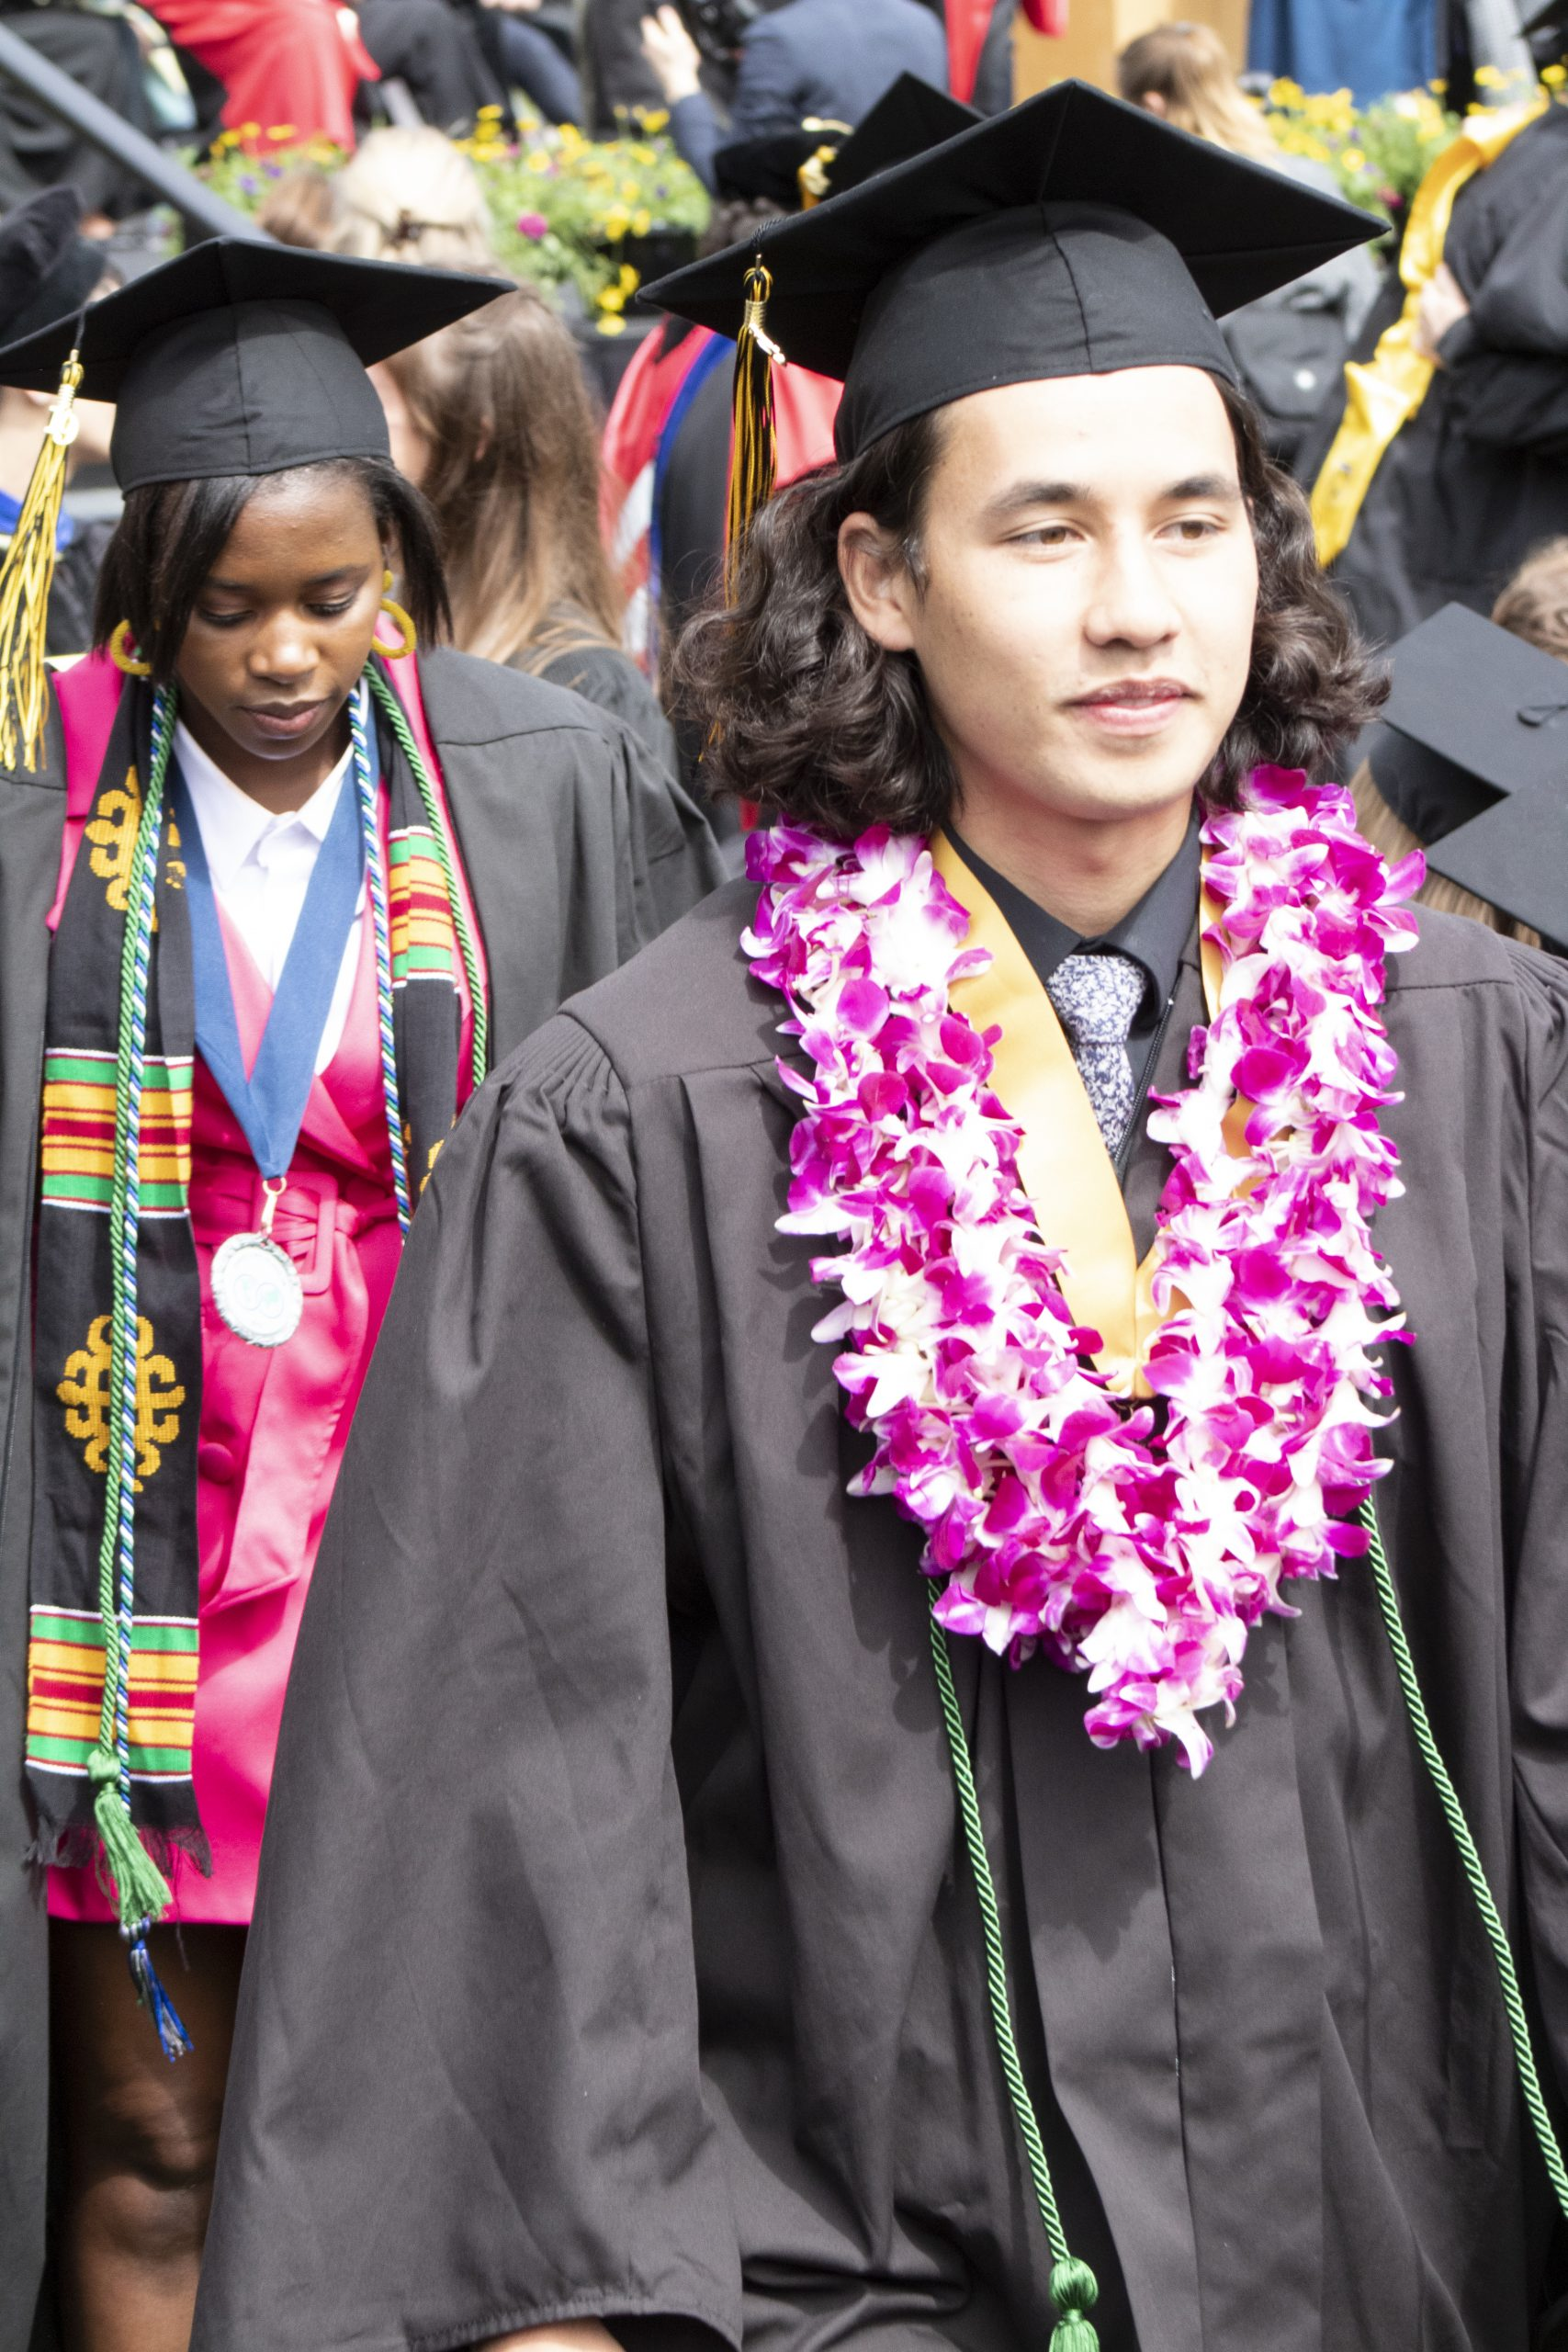 Students make their way back to their seats after recieving their diplomas.